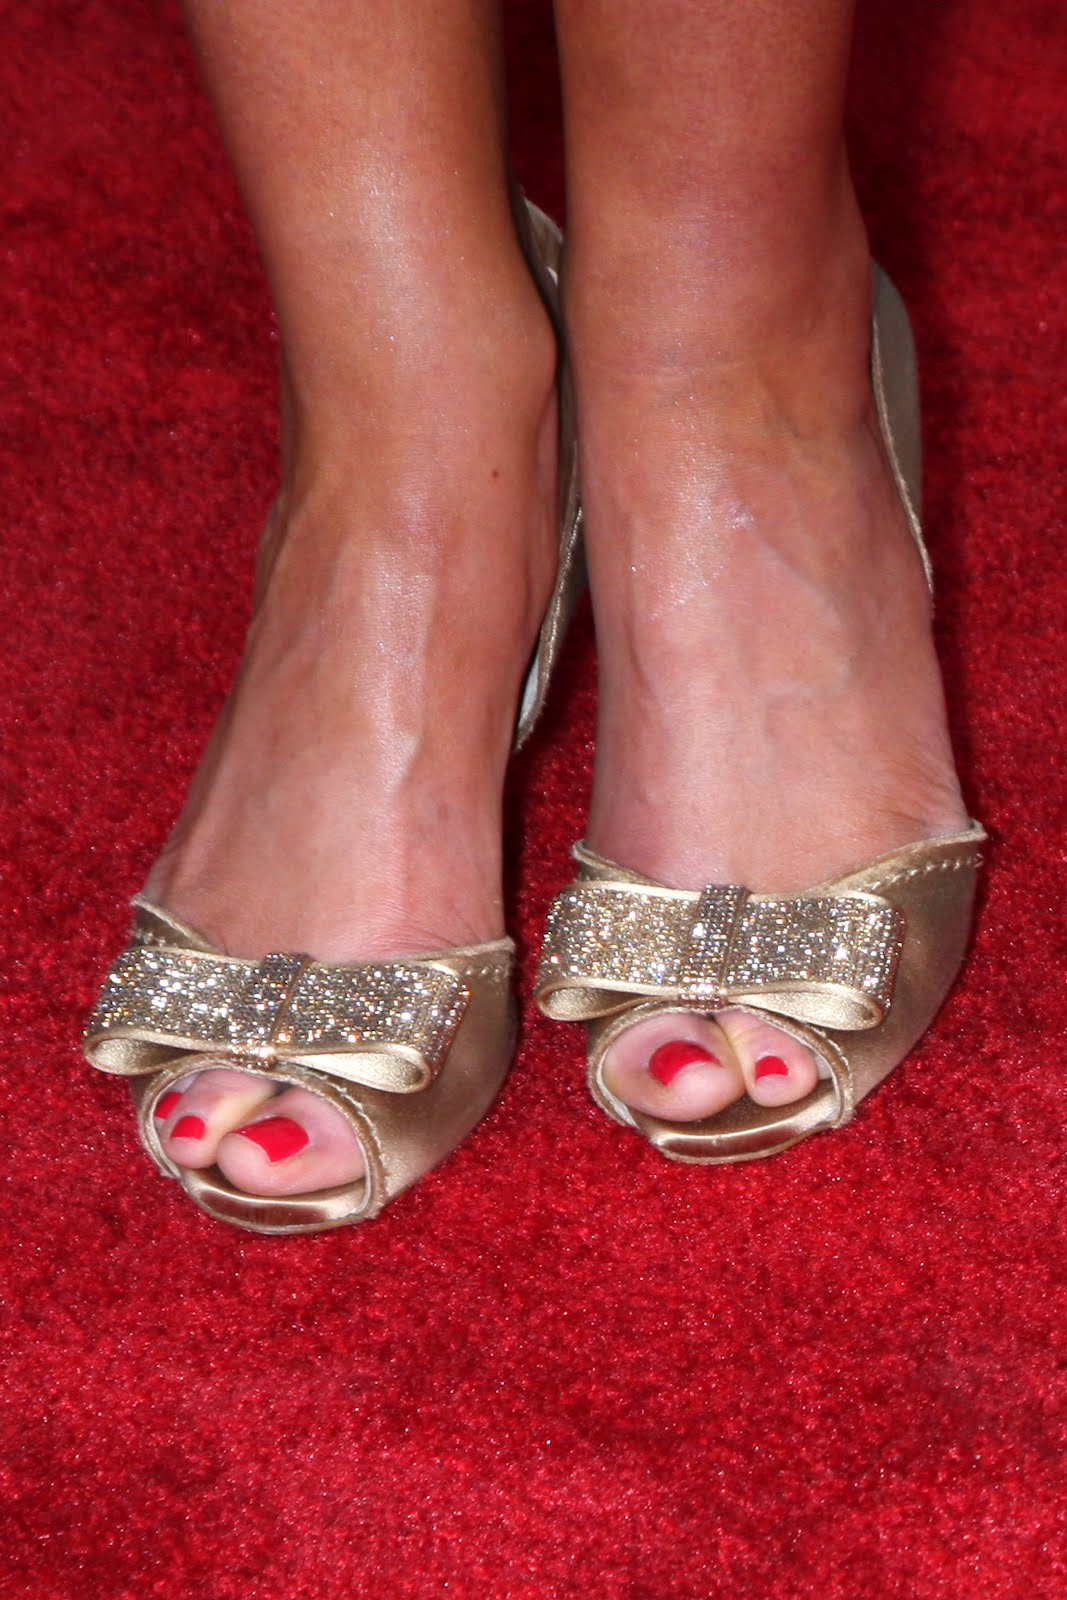 Victoria Justices Legs And Feet-23 Sexiest Celebrity Legs